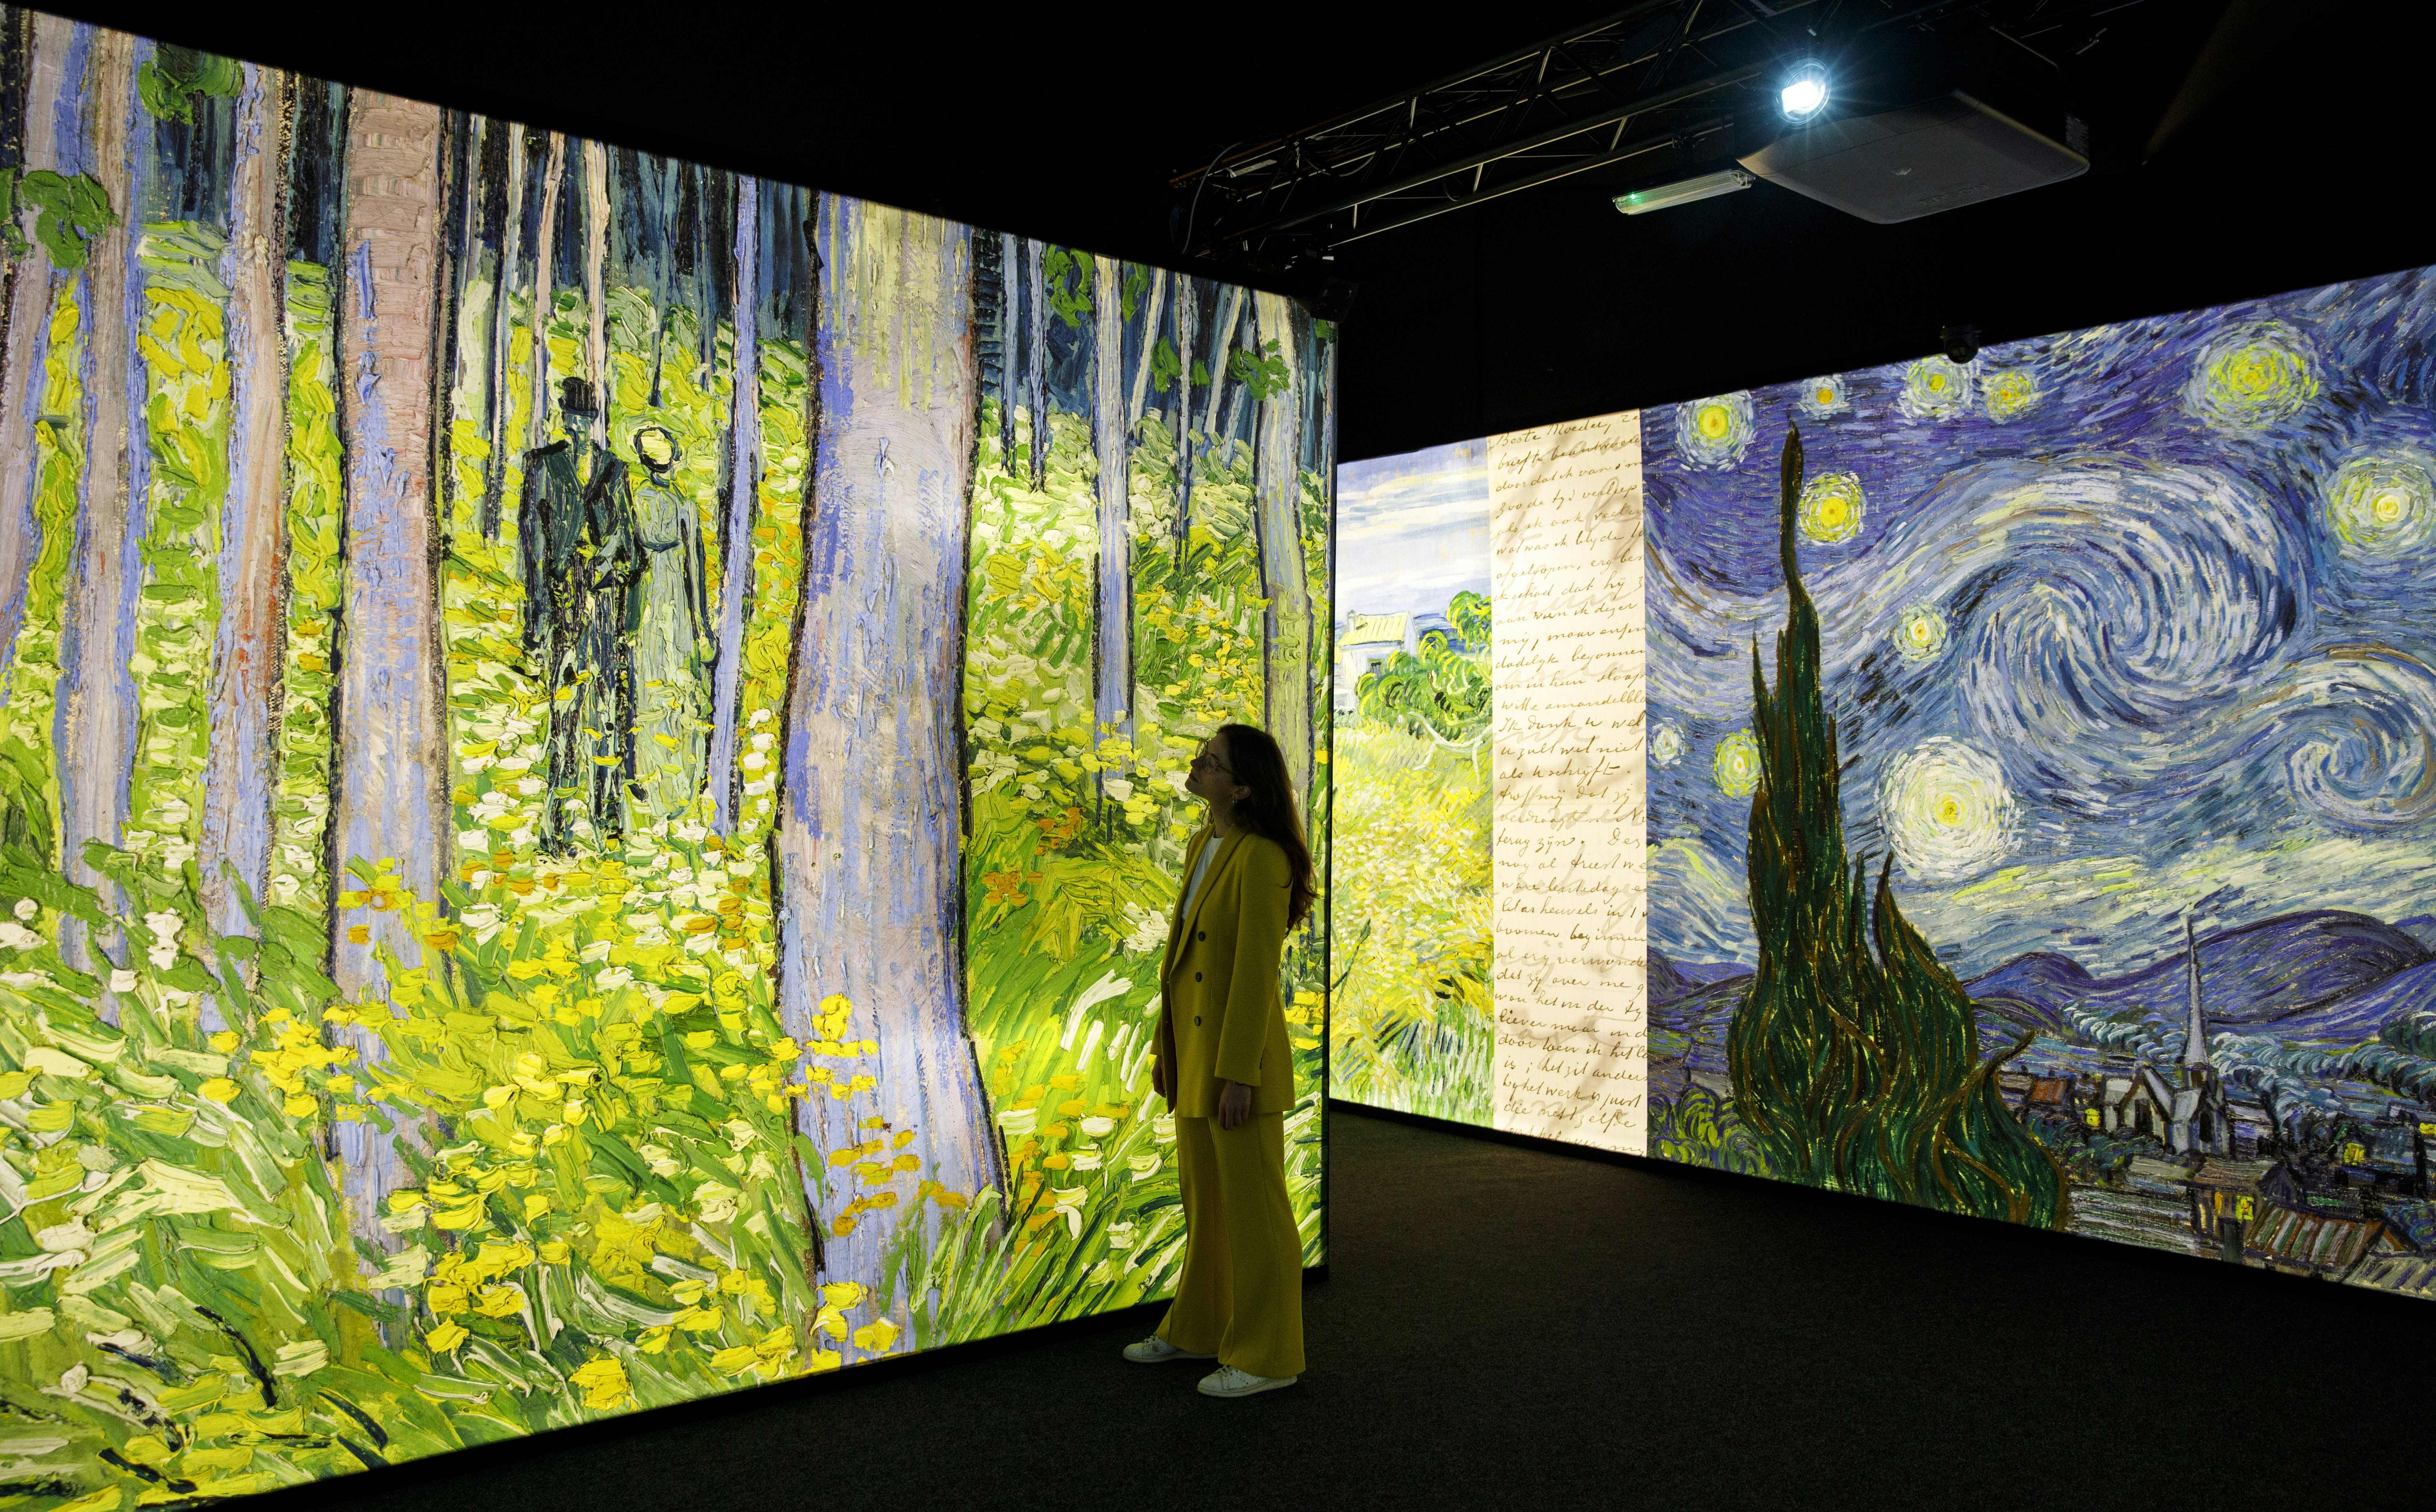 An employee poses with displays showing artworks by Dutch artist Vincent Van Gogh, during a photocall to promote the 'Meet Vincent van Gogh' exhibition, at the South Bank centre in London on February 6, 2020. (Photo by TOLGA AKMEN/AFP via Getty Images)